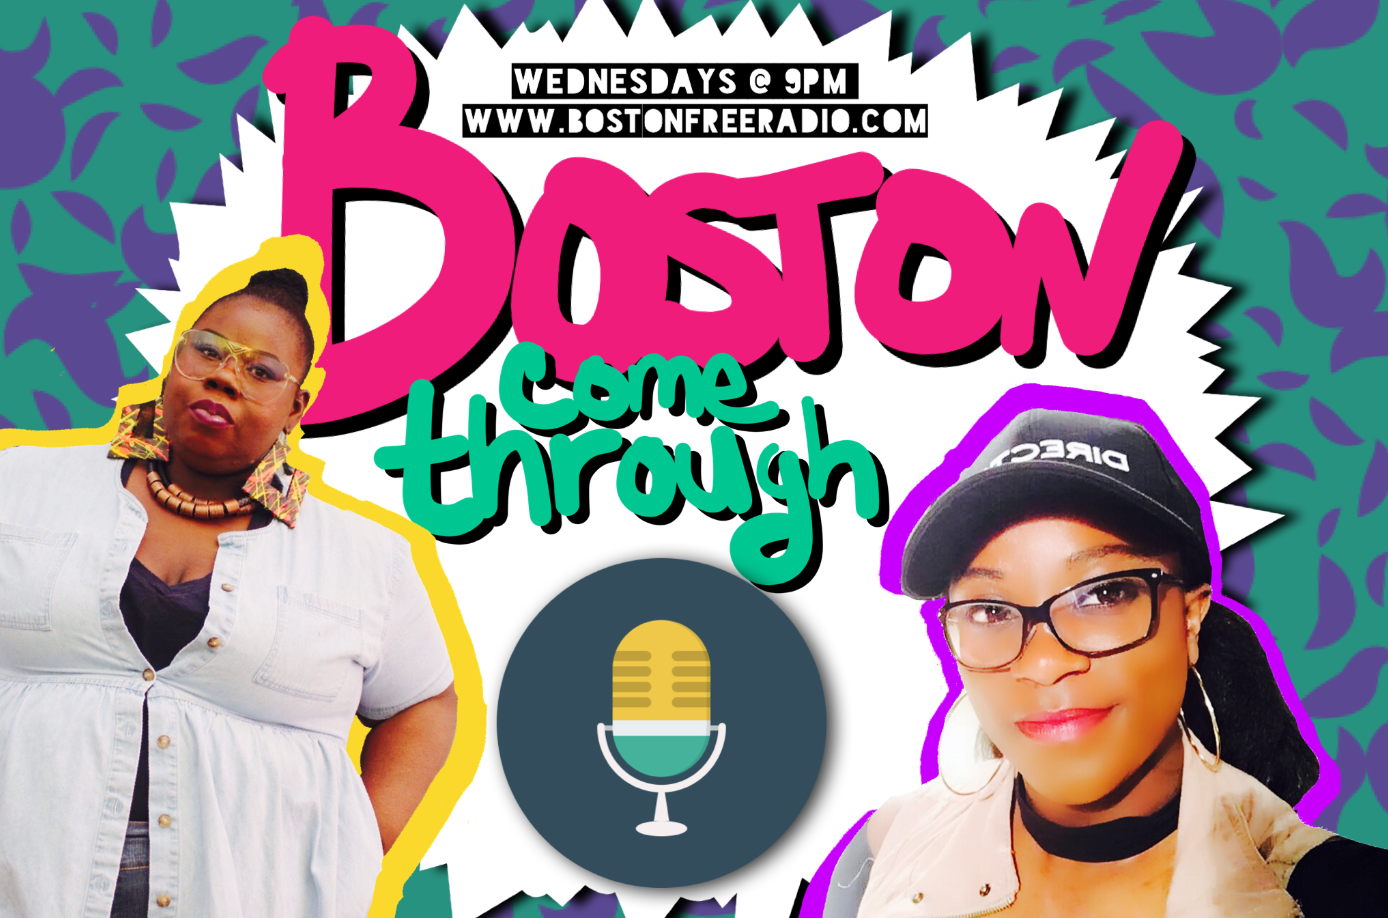 Myself, aka MsFab617, and my co-host, Crystal, aka the Crystal Lens air live every Wednesday at 9pm EST on Boston Free Radio!